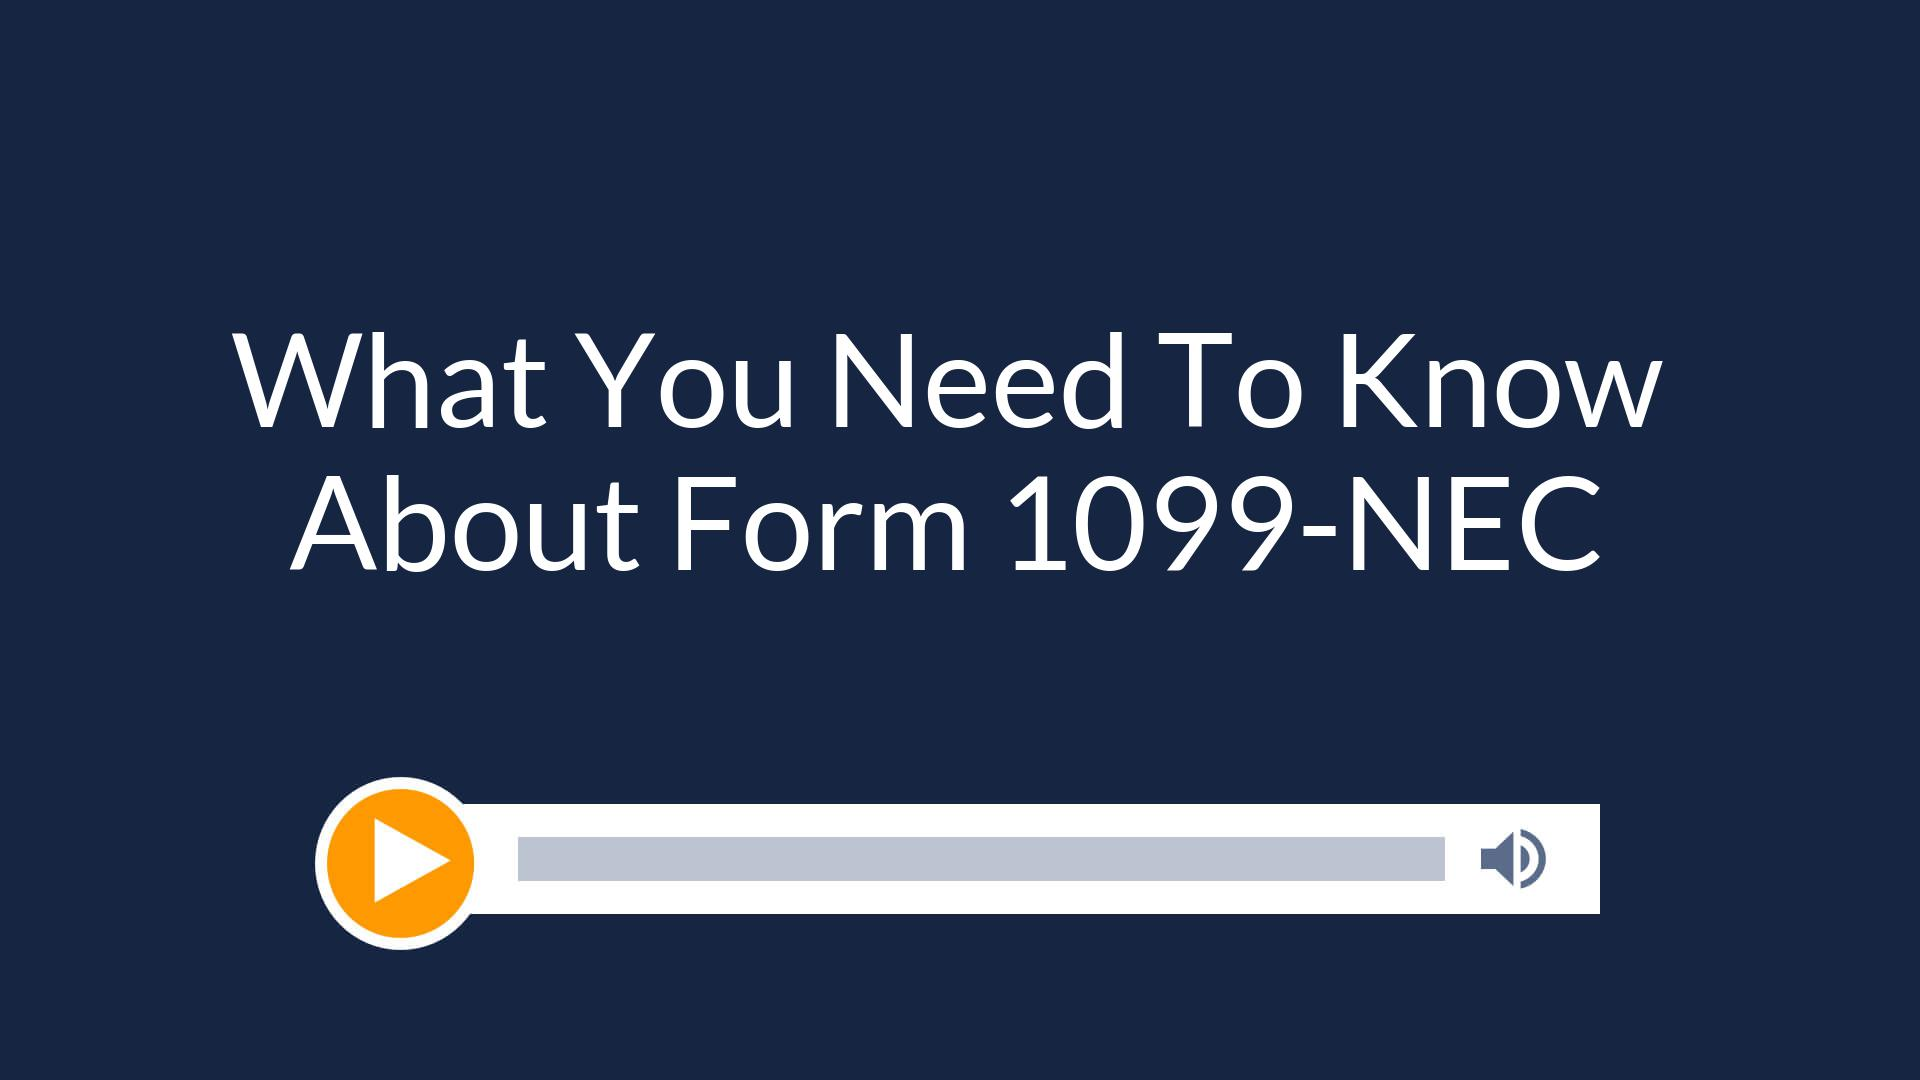 What You Need To Know About Form 1099-NEC